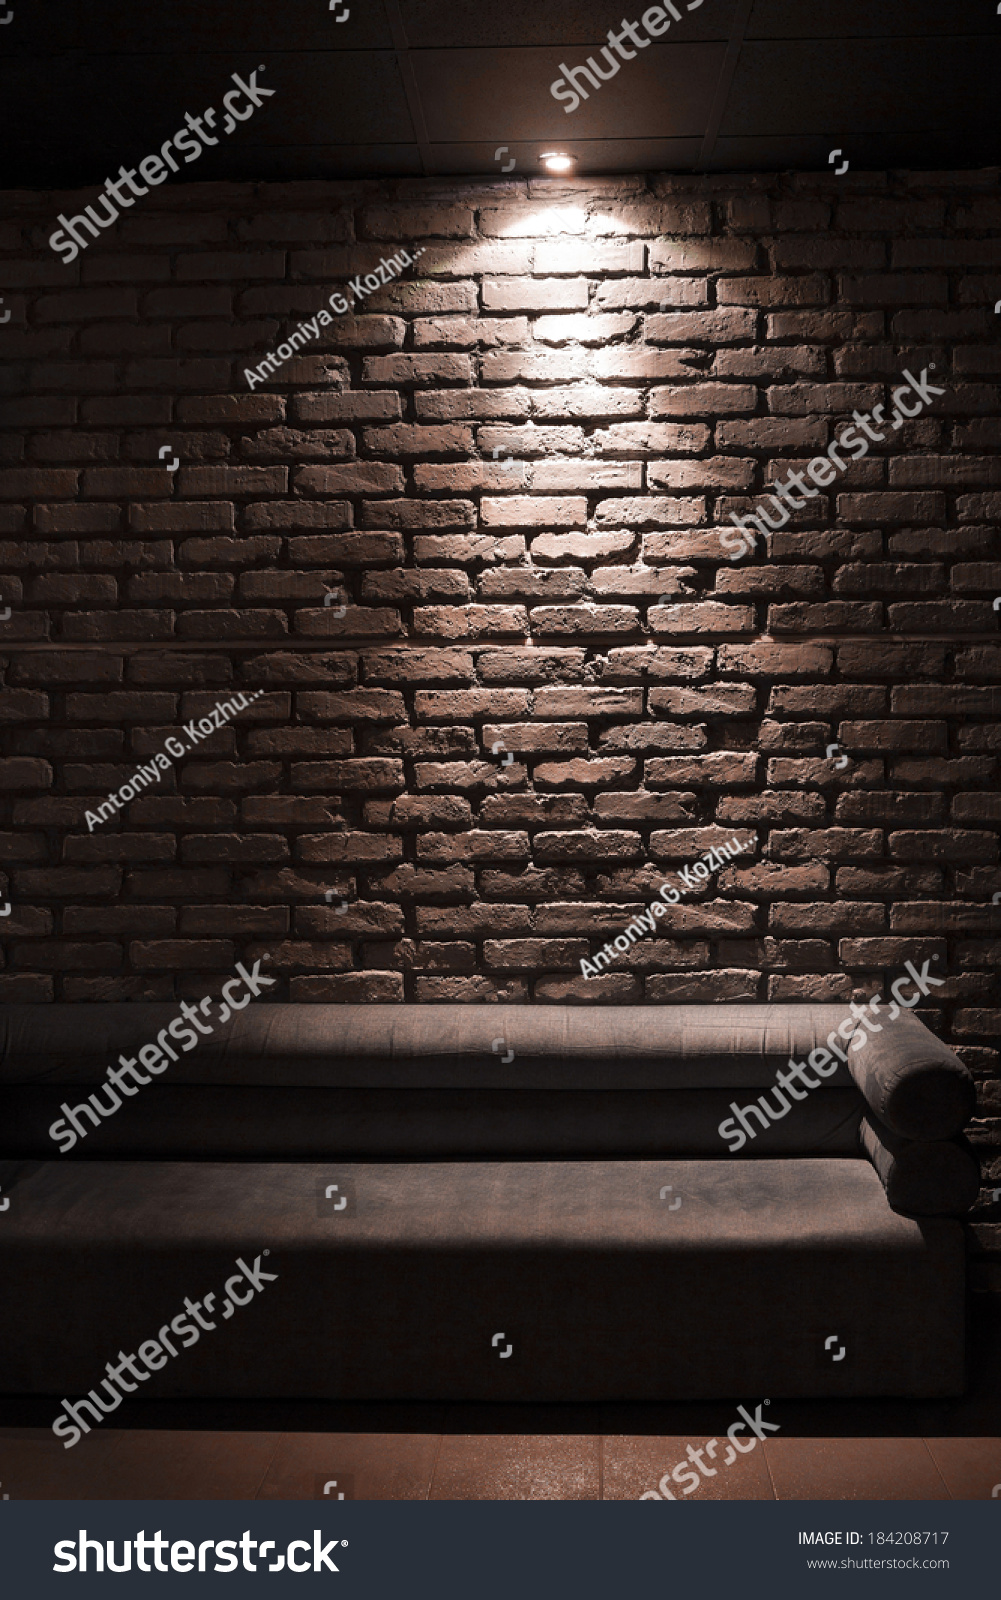 Brick Meubles Divan Lit Brown Sofa Illuminated Above Brick Background Stock Photo Edit